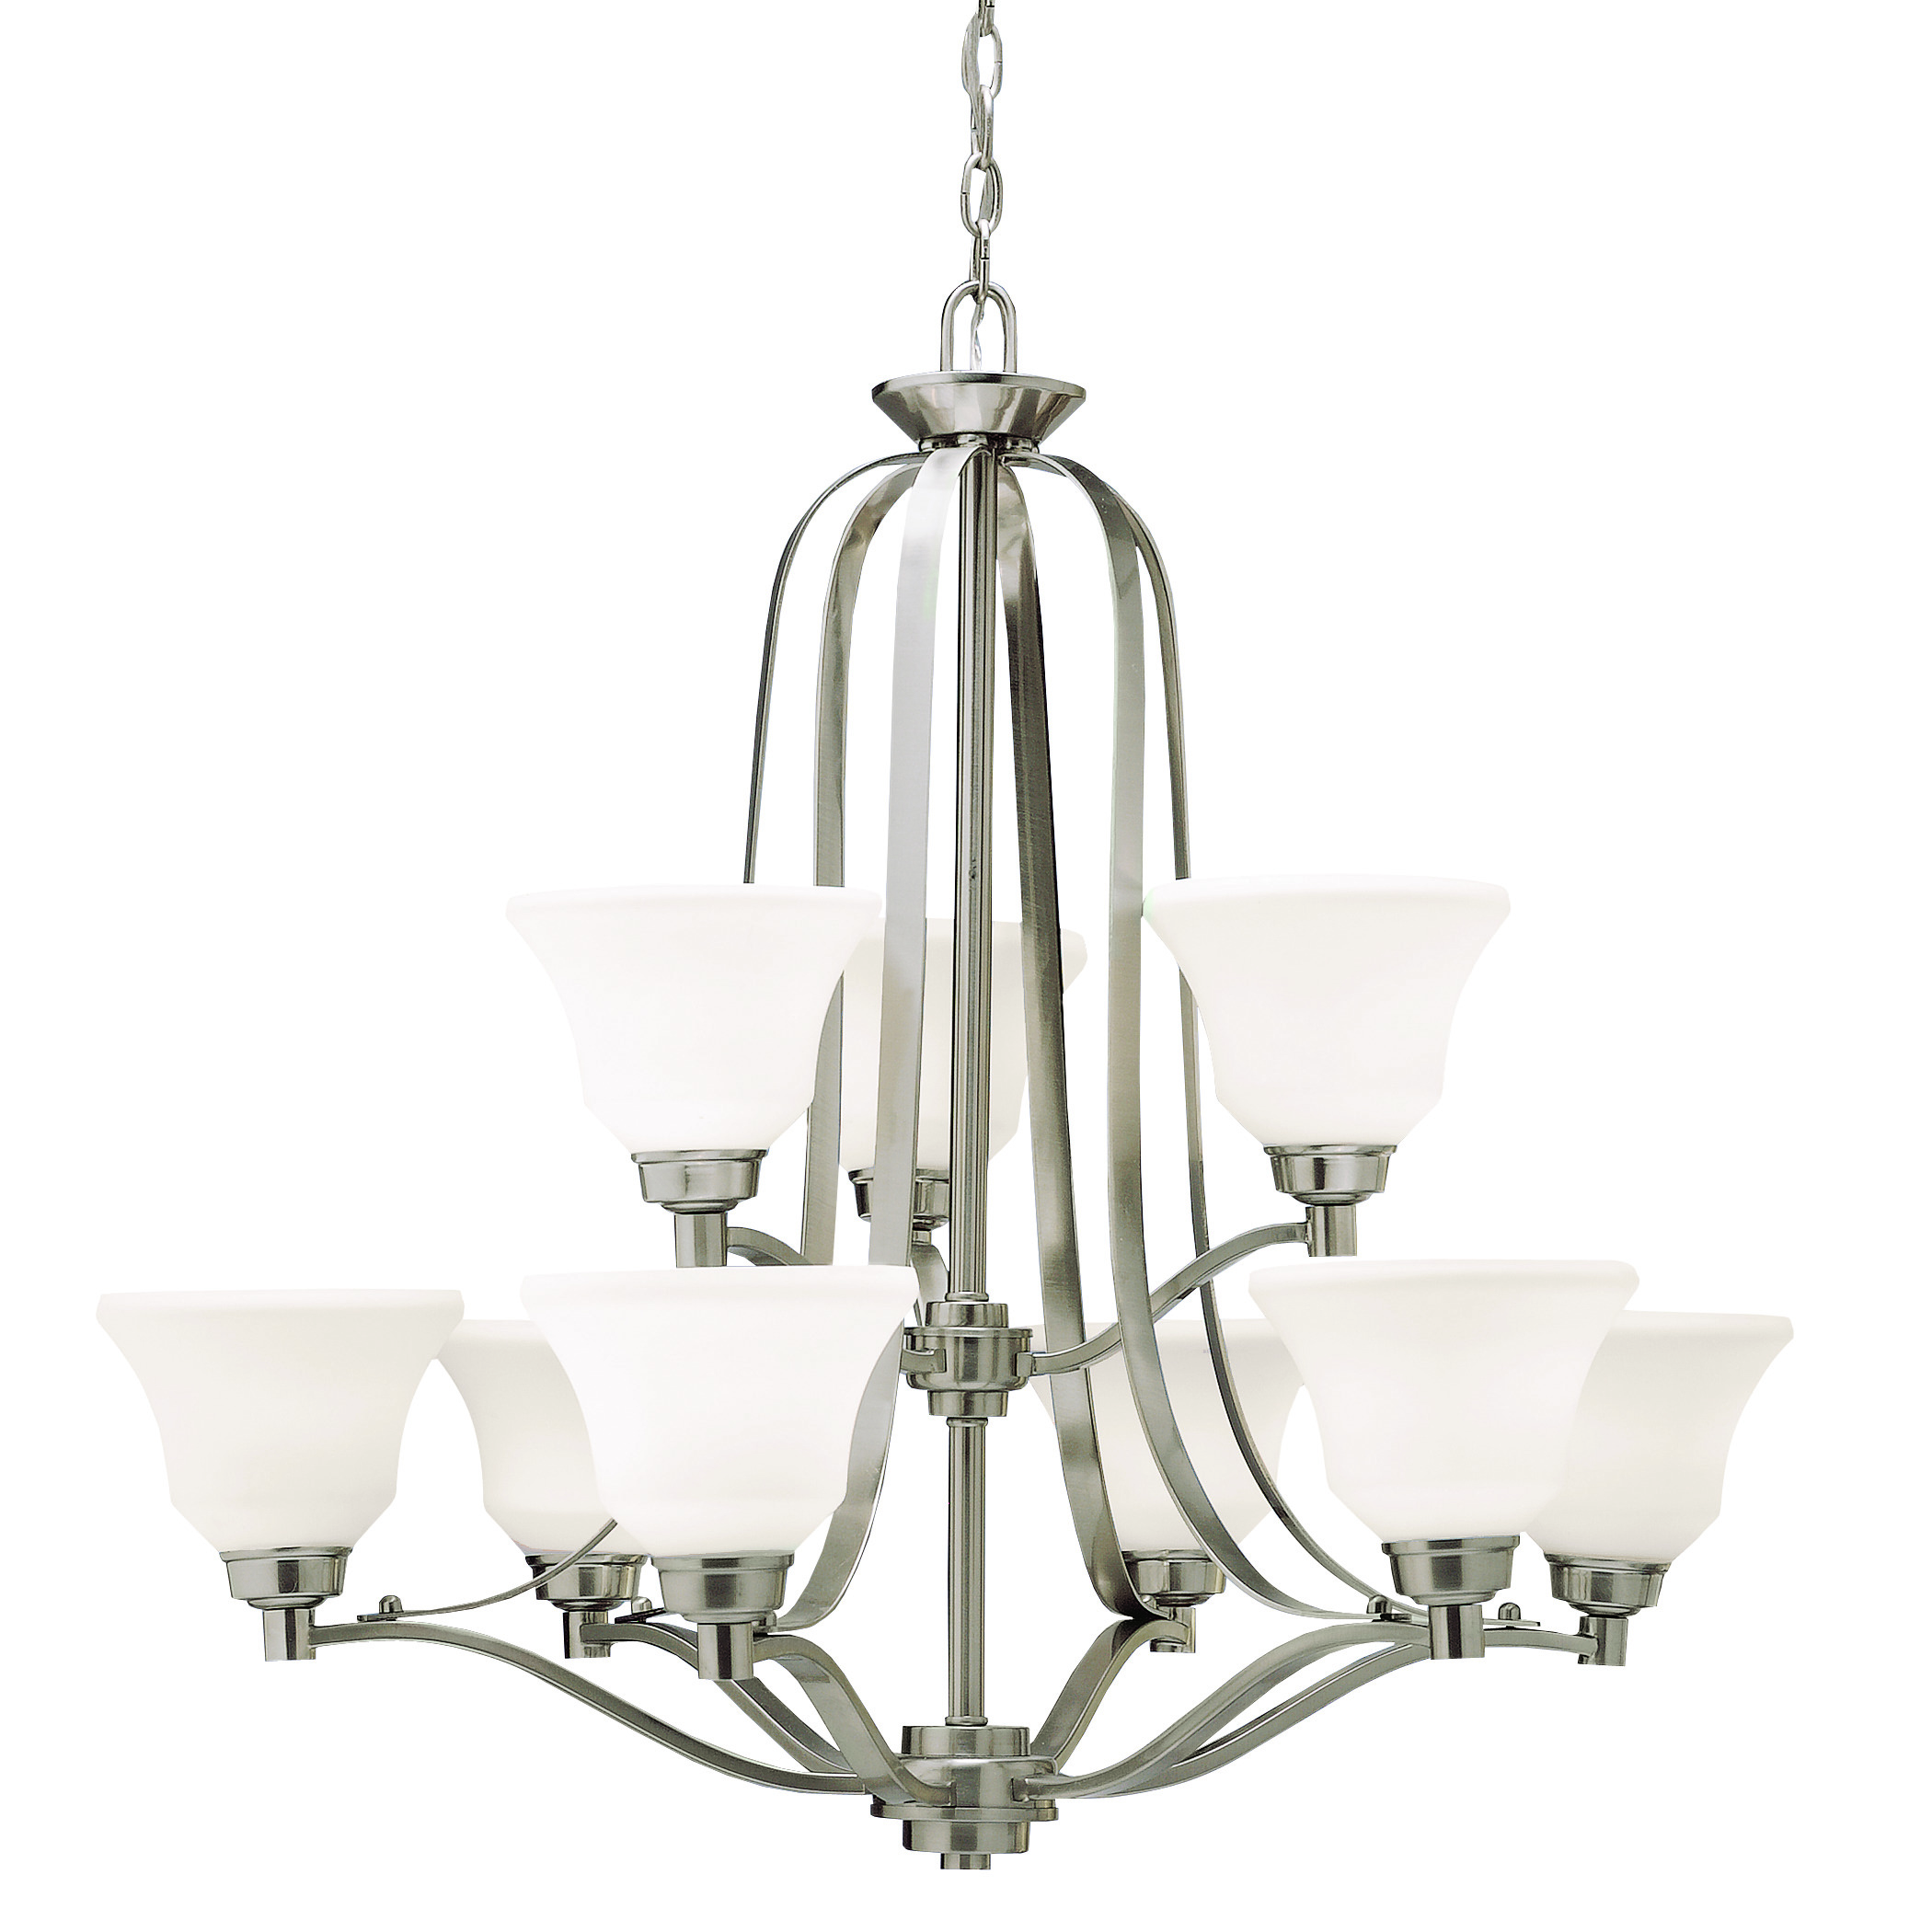 Kichler Langford LED Chandelier with Satin Etched White Shade - Brushed Nickel (1784NIL16)